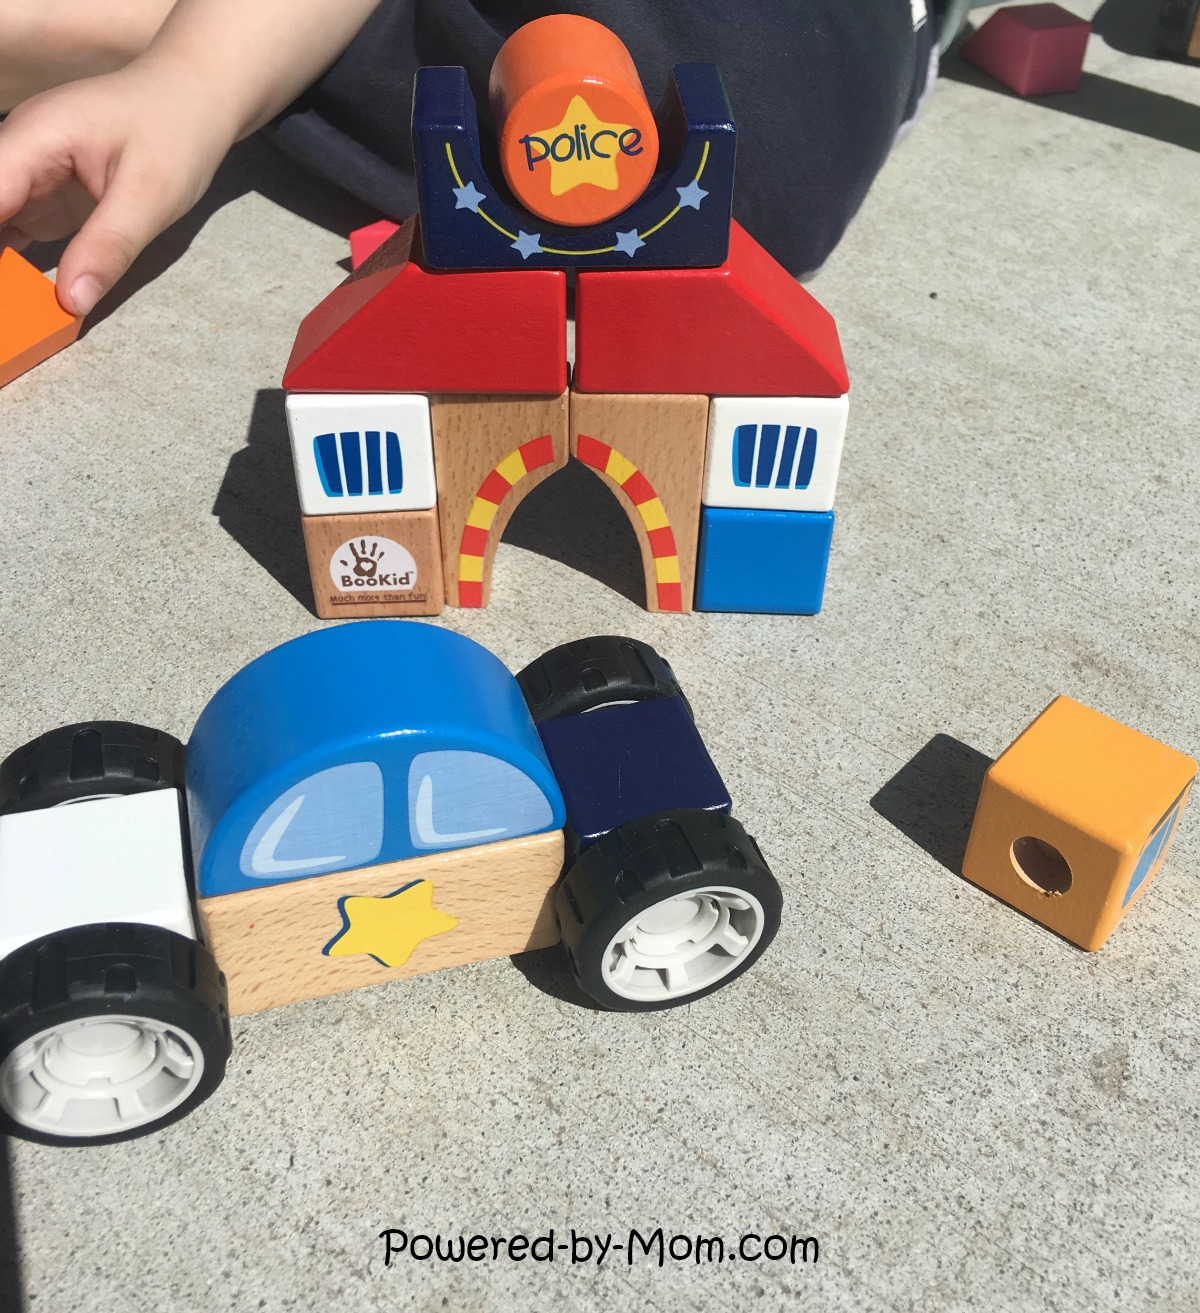 BooKids Wood Blocks Police Car - Powered by Mom